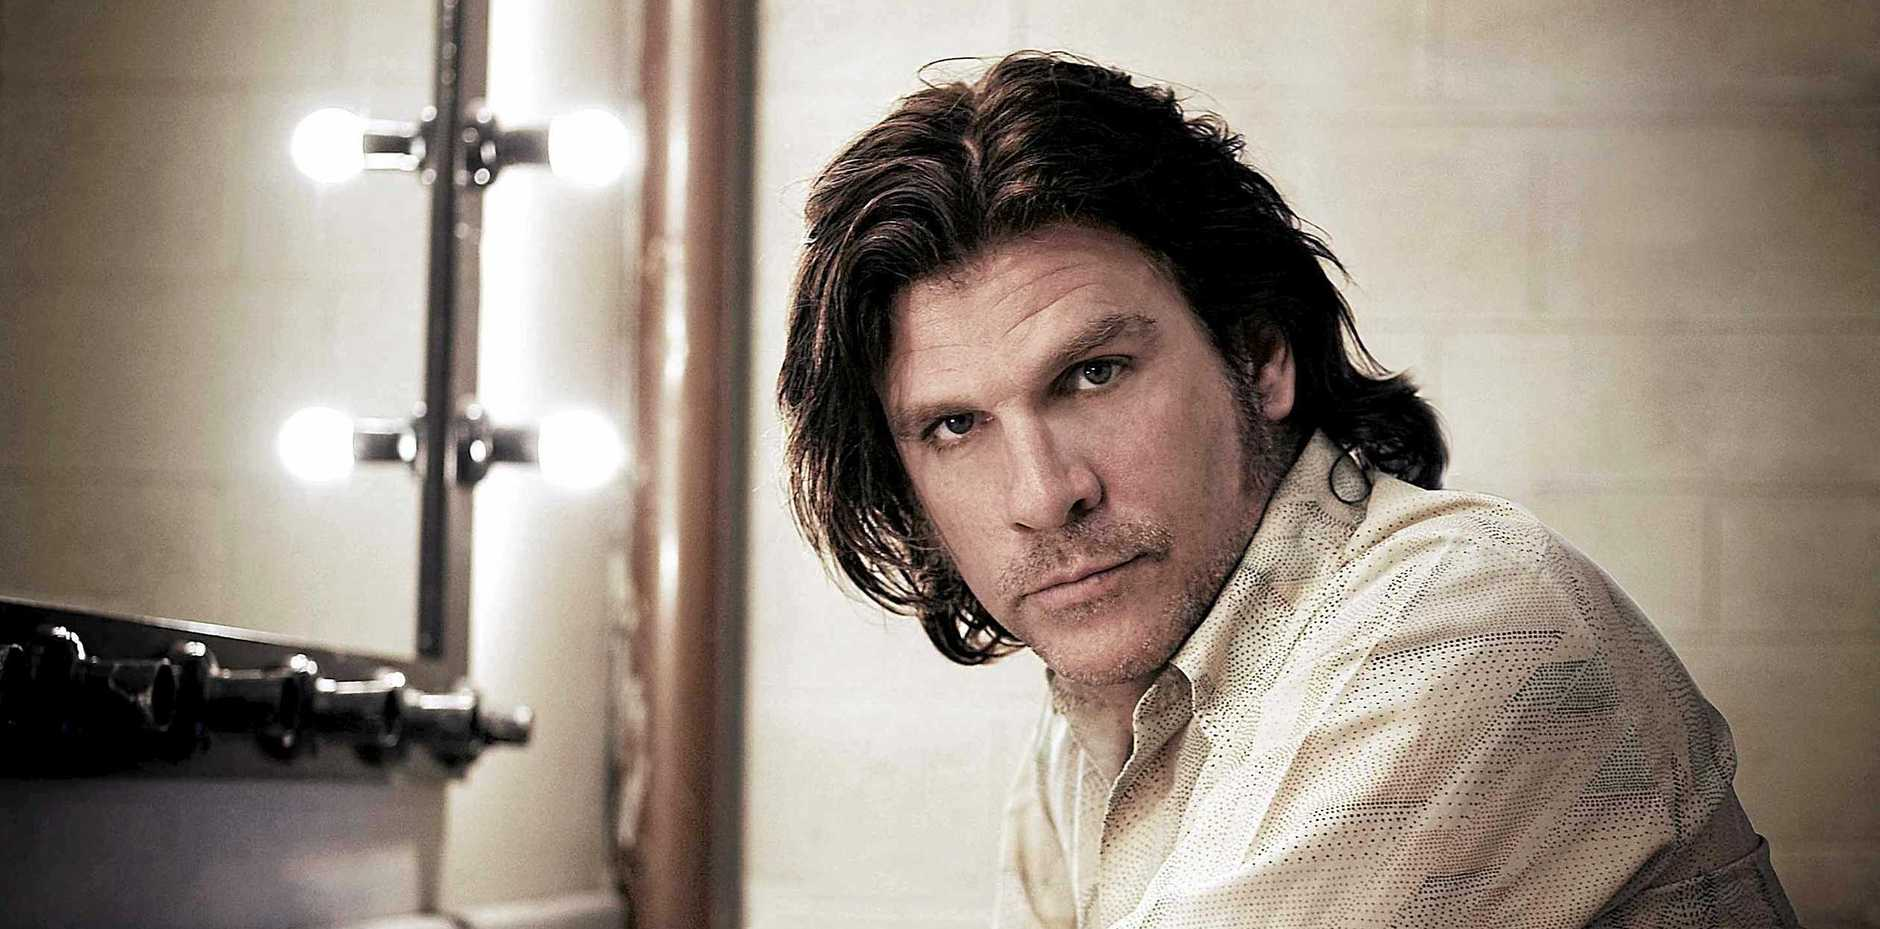 FUNDRAISER: Northern Rivers-based musician Tex Perkins will join bluesman Matt Walker this Saturday as the headline acts for the Ewingar Rising bushfire recovery benefit concert this weekend. Also in the line-up are Marshall O'Kell, Watling & Bates, Georgia Cummins, Two Tears in a Bucket, the Haystack Mountain Hermits, August River Band and Mermaid Avenue, plus Jase Lansky and Col Finley. Starts tomorrow Friday and runs for three days. Tickets from eventbrite.com.au